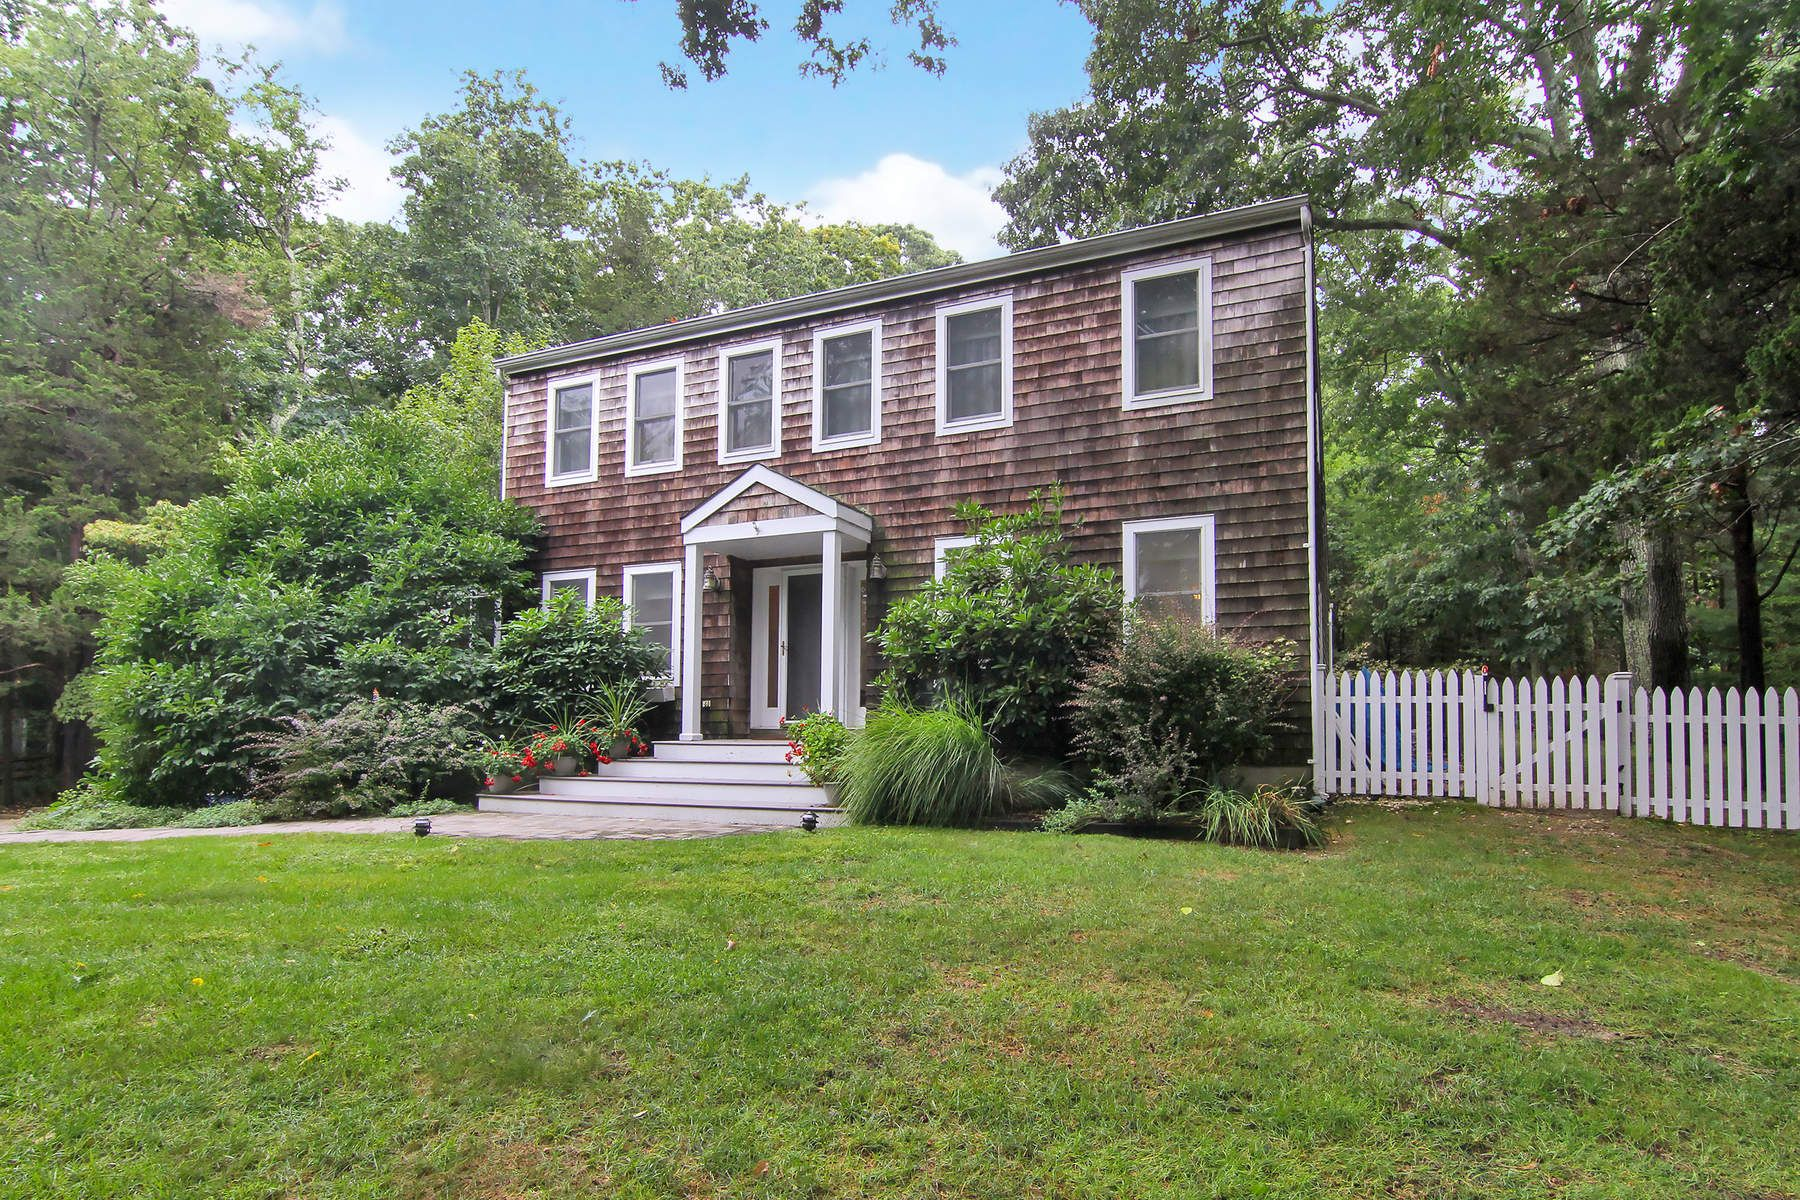 Single Family Home for Rent at Waterfront Community 1 Bittersweet Lane Sag Harbor, New York 11963 United States